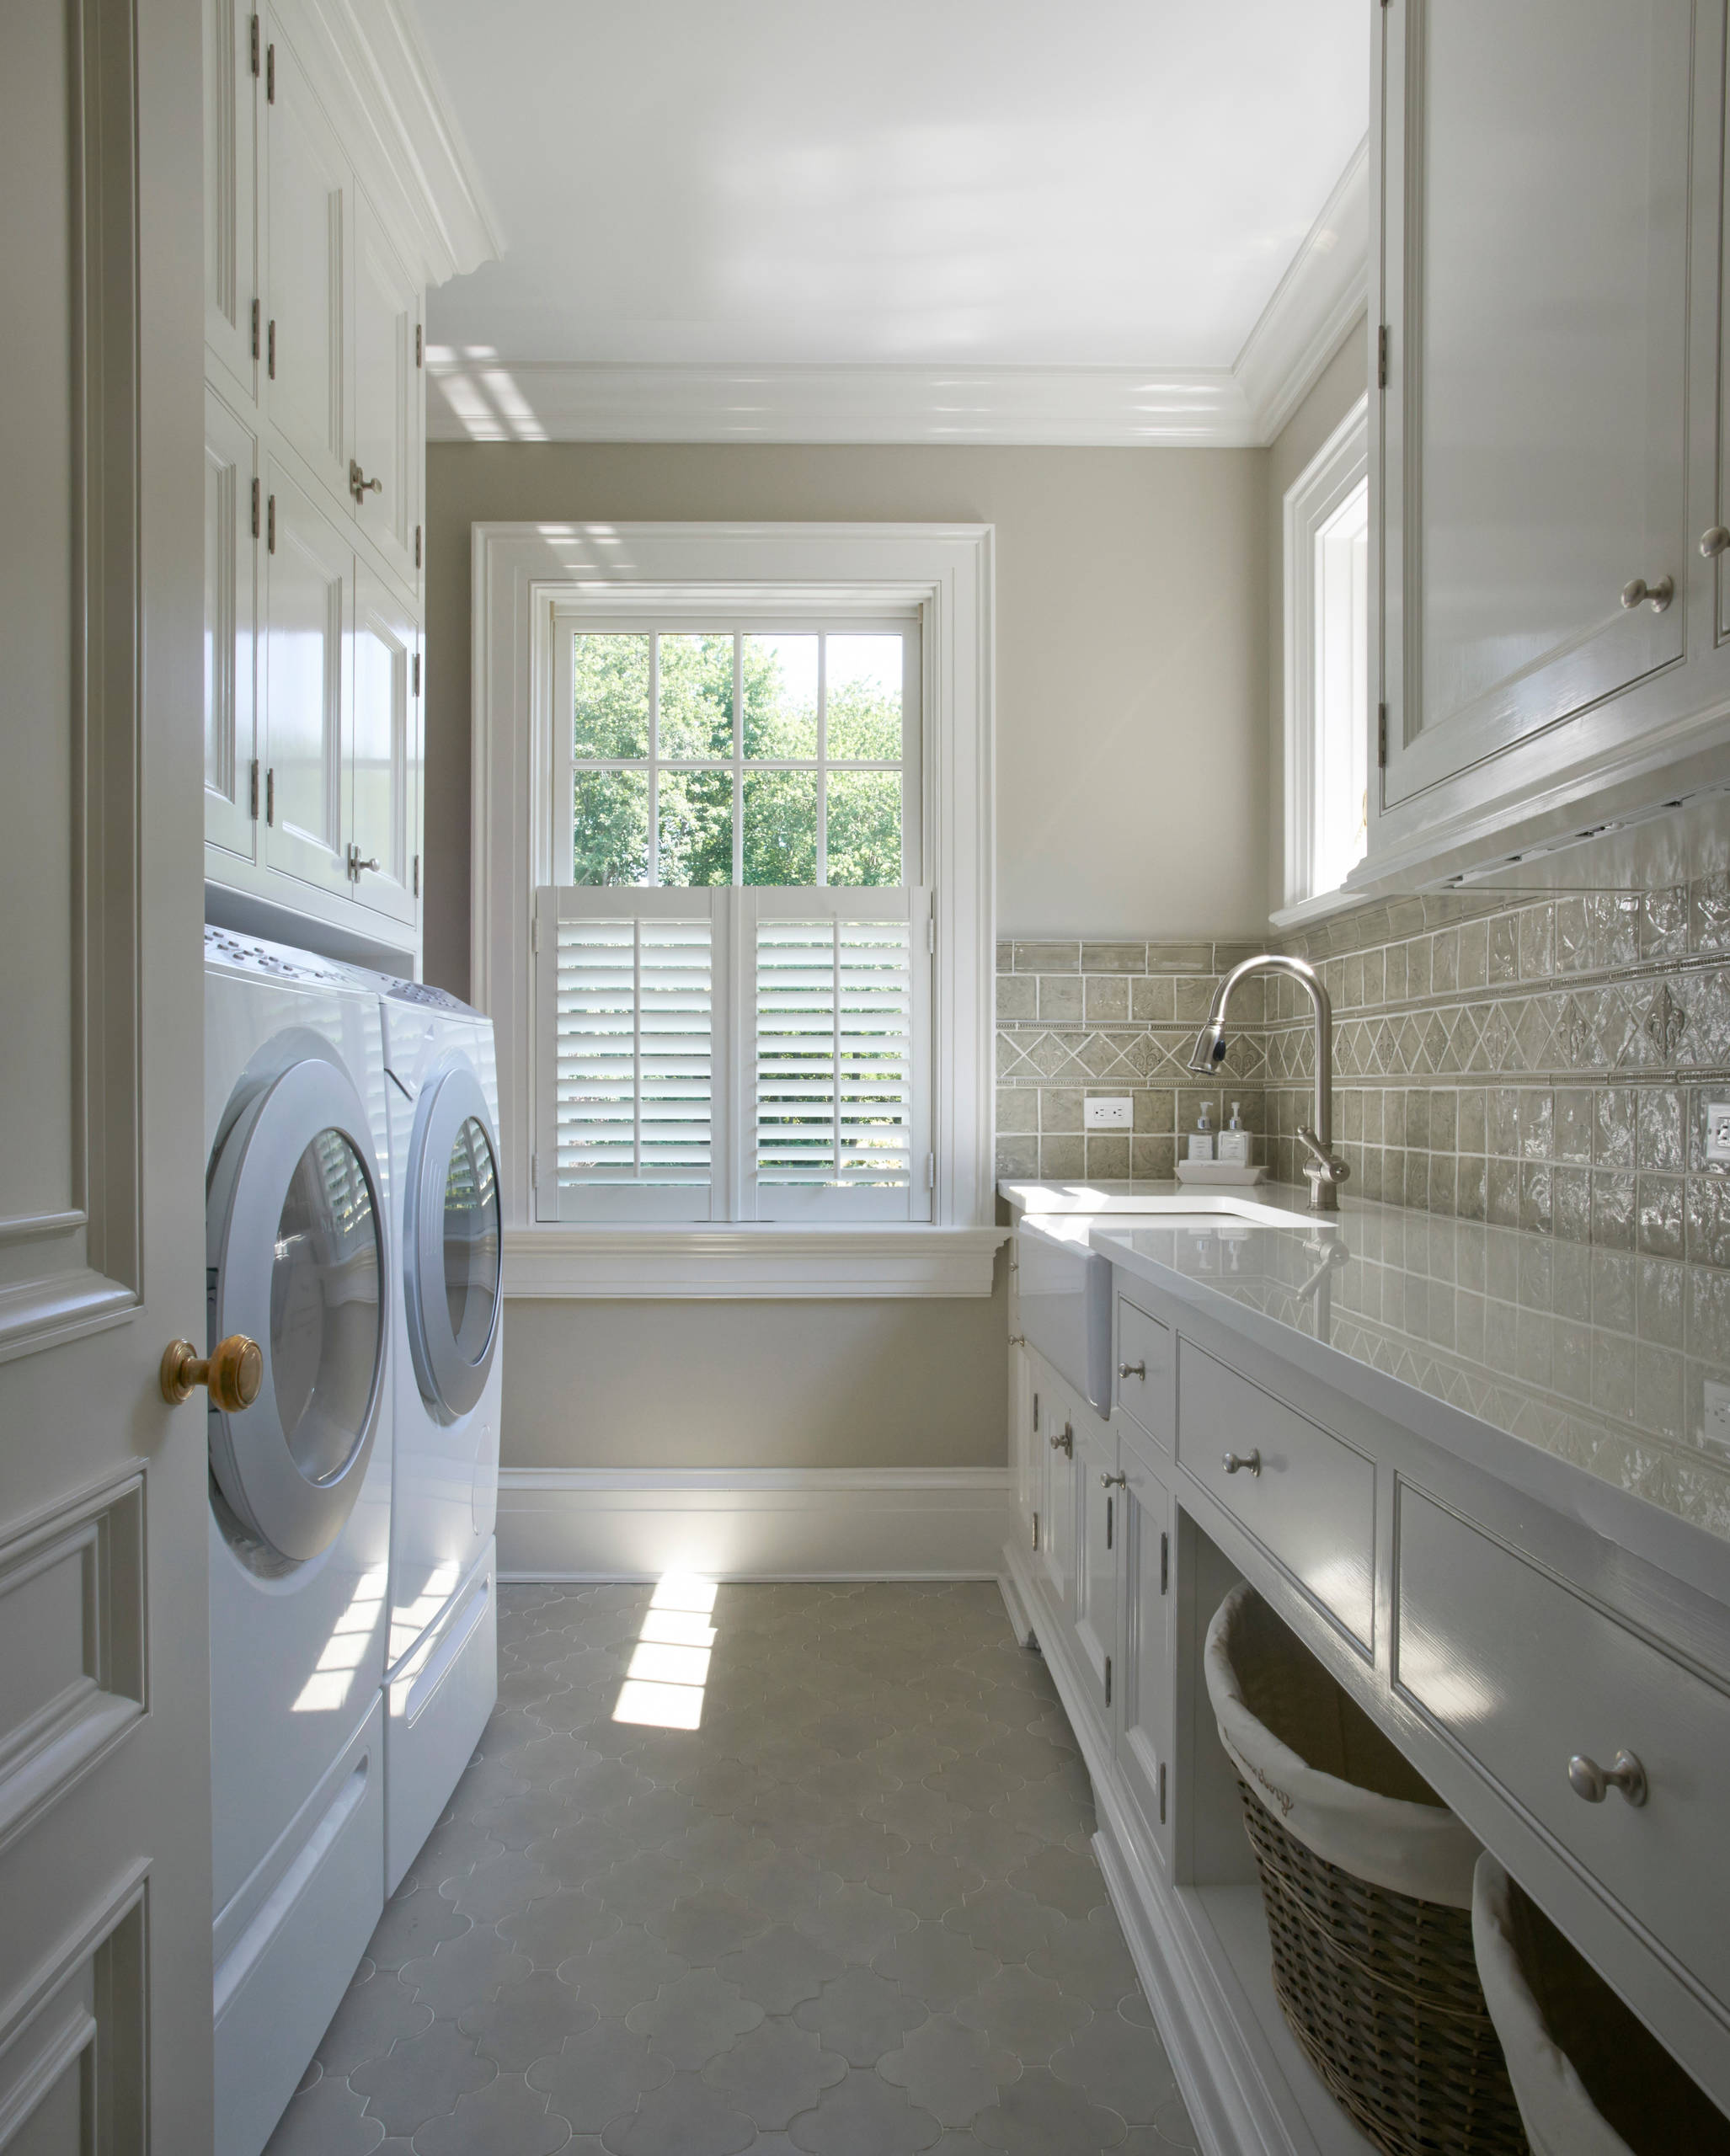 75 Beautiful Ceramic Tile Laundry Room Pictures Ideas December 2020 Houzz